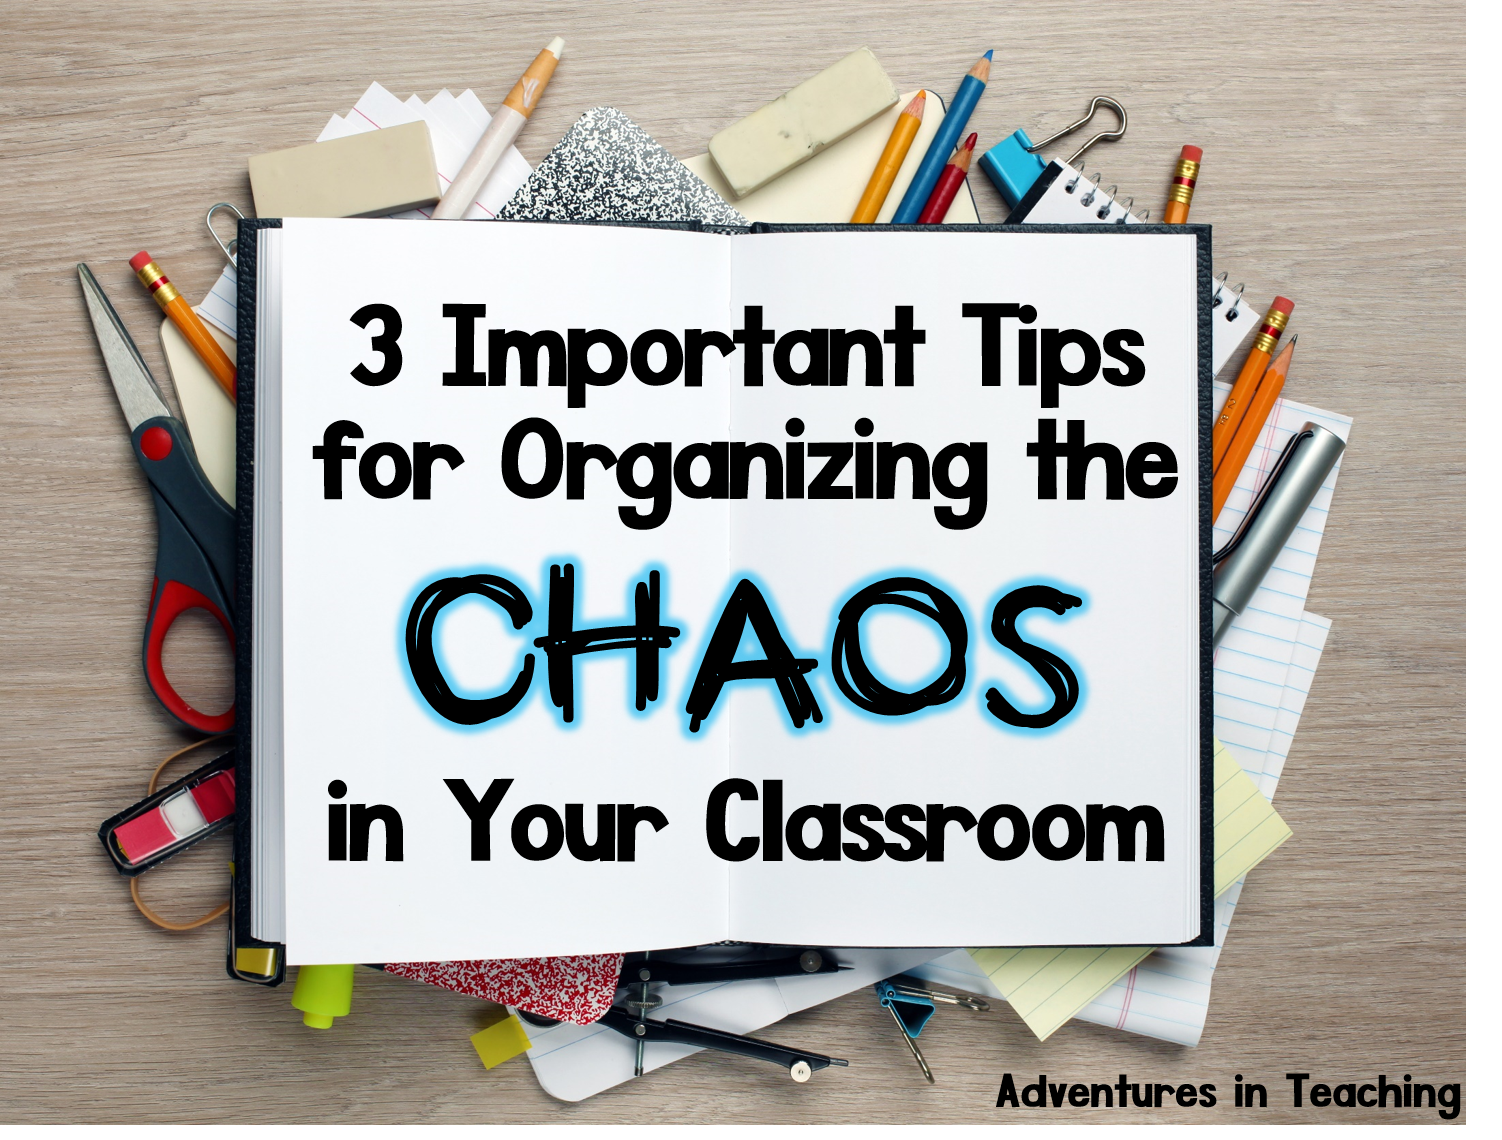 3 important tips for organizing the chaos in your classroom